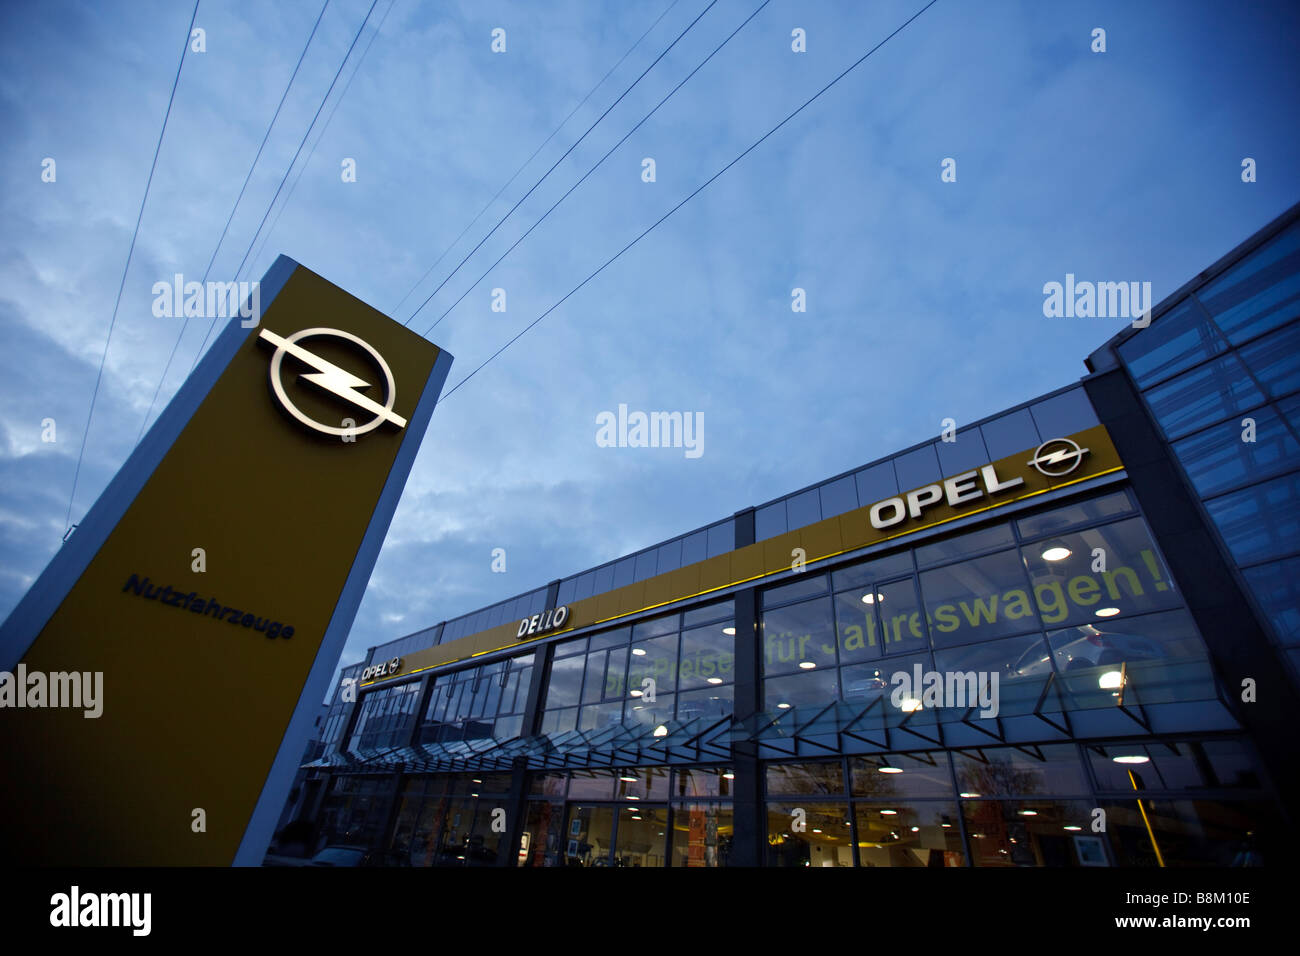 Sign Opel is seen at an car dealership in Hamburg, Germany - Stock Image